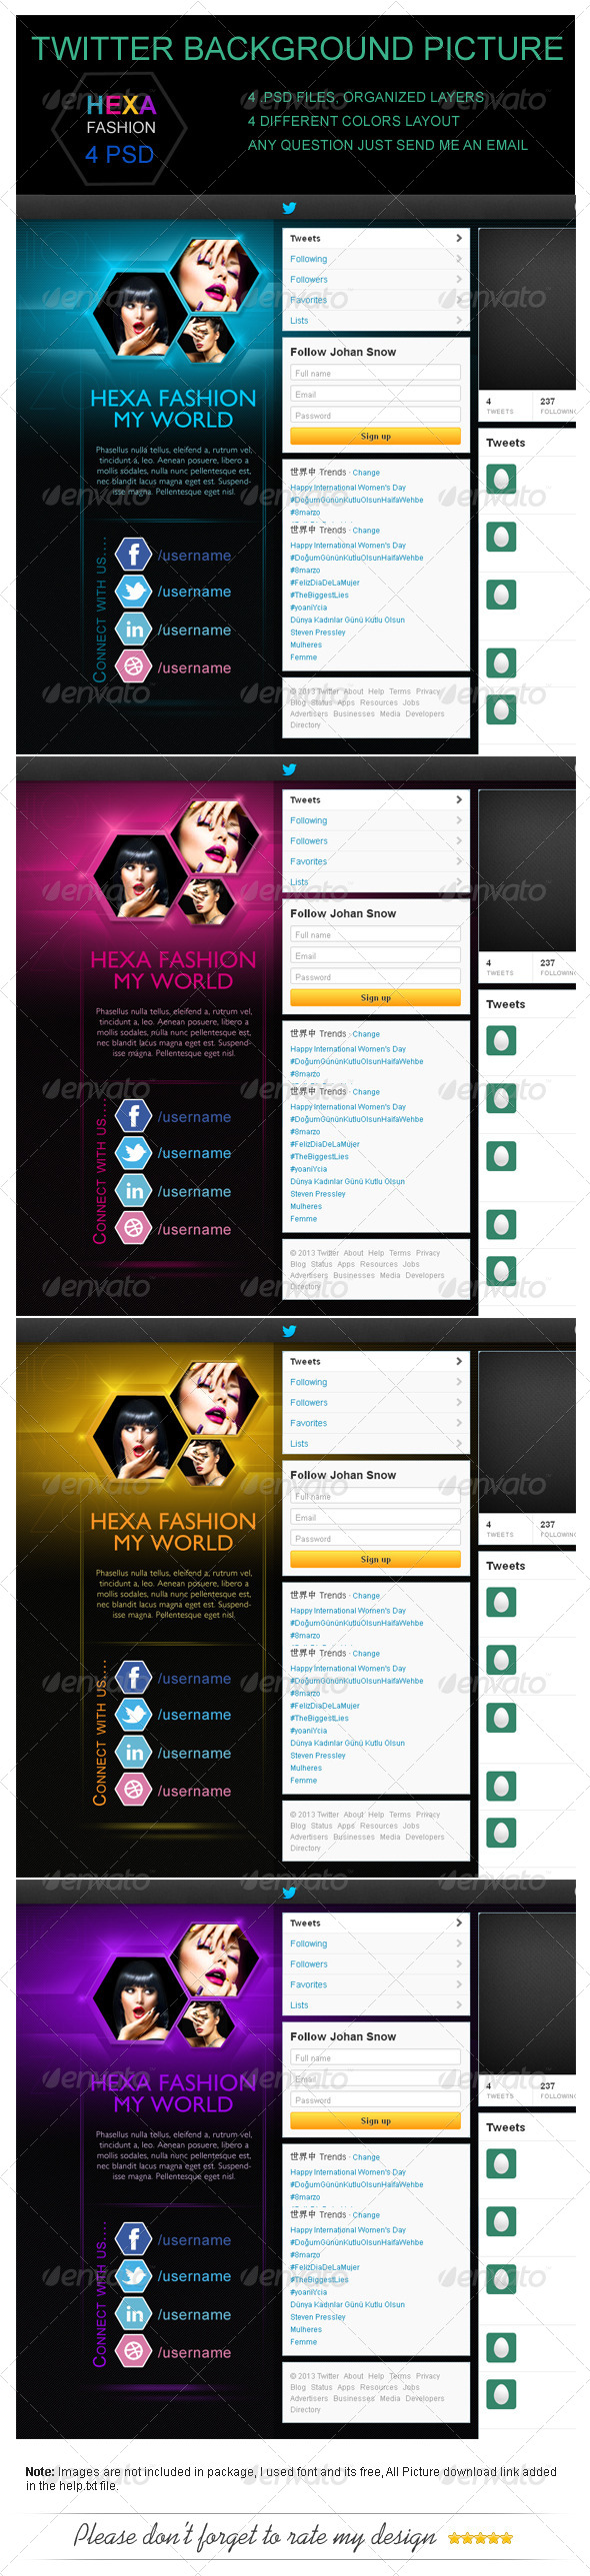 Hexa Fashion Twitter Background Picture - Twitter Social Media